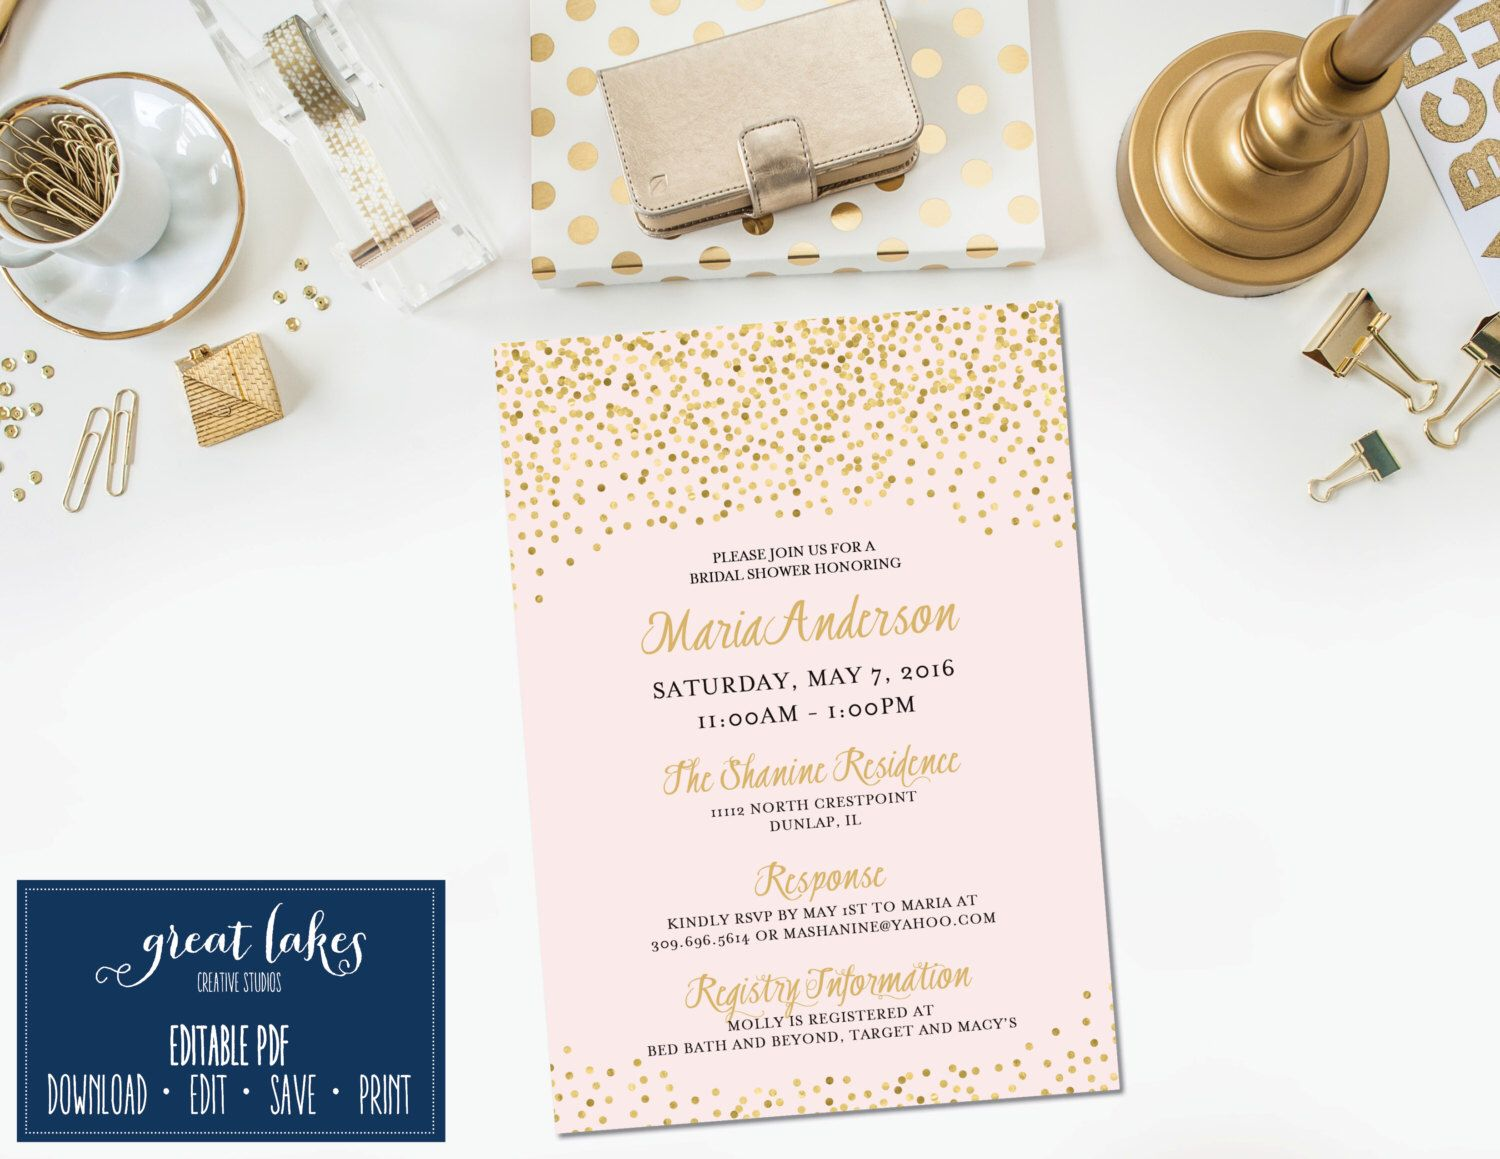 Invitation Template Bridal Shower Invite With Gold Confetti Gold